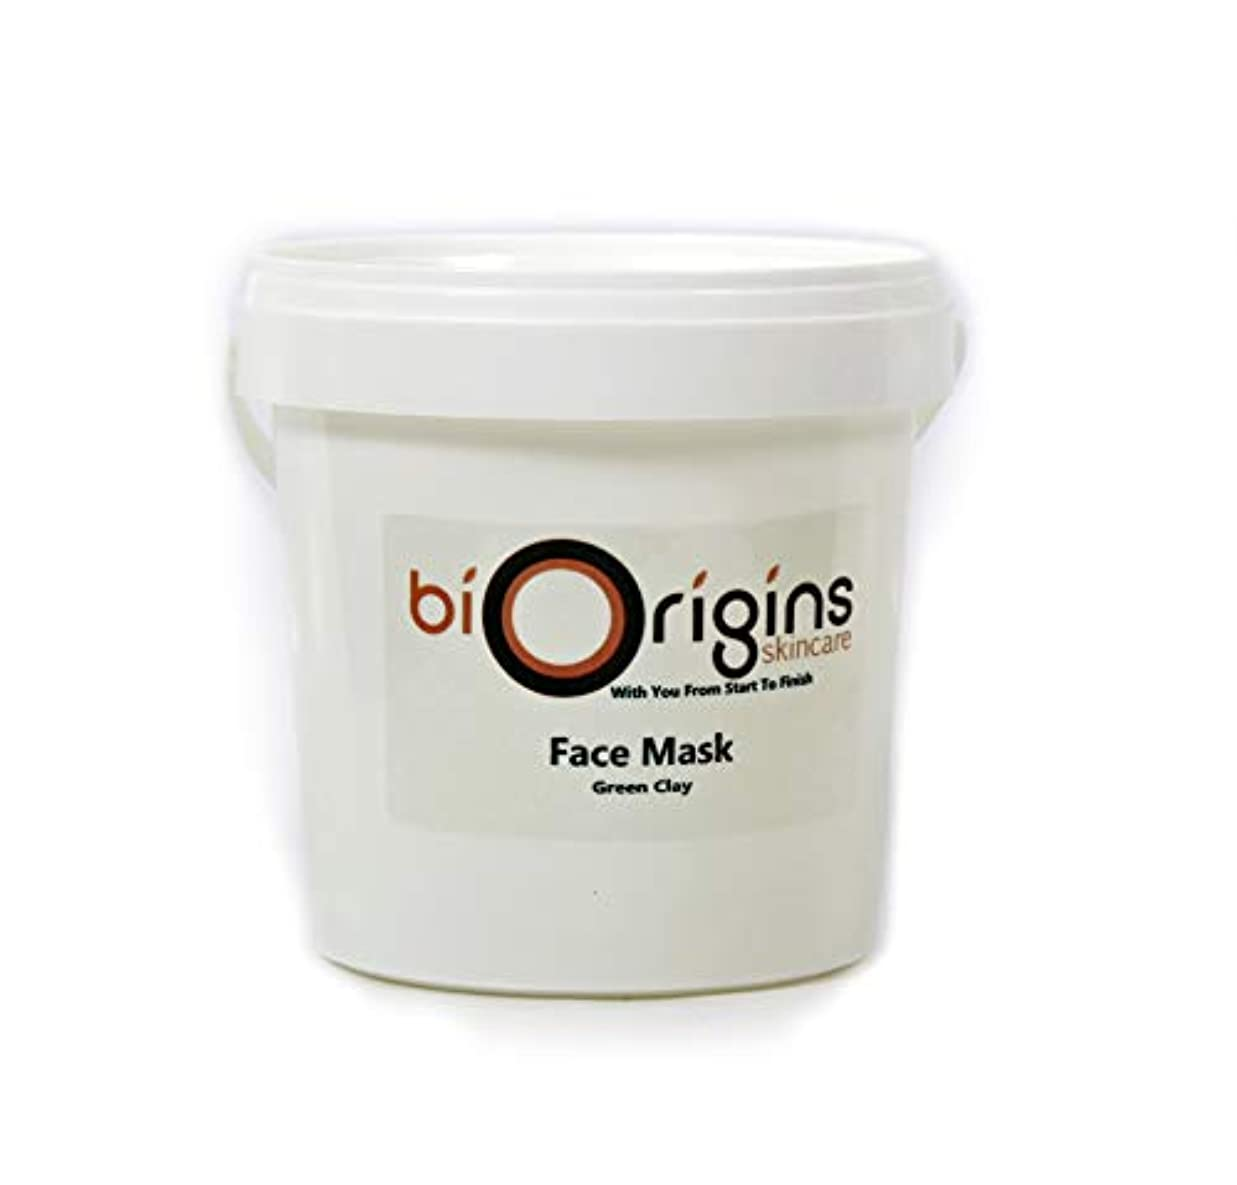 効果的ぼんやりしたプレゼントFace Mask - Green Clay - Botanical Skincare Base - 1Kg